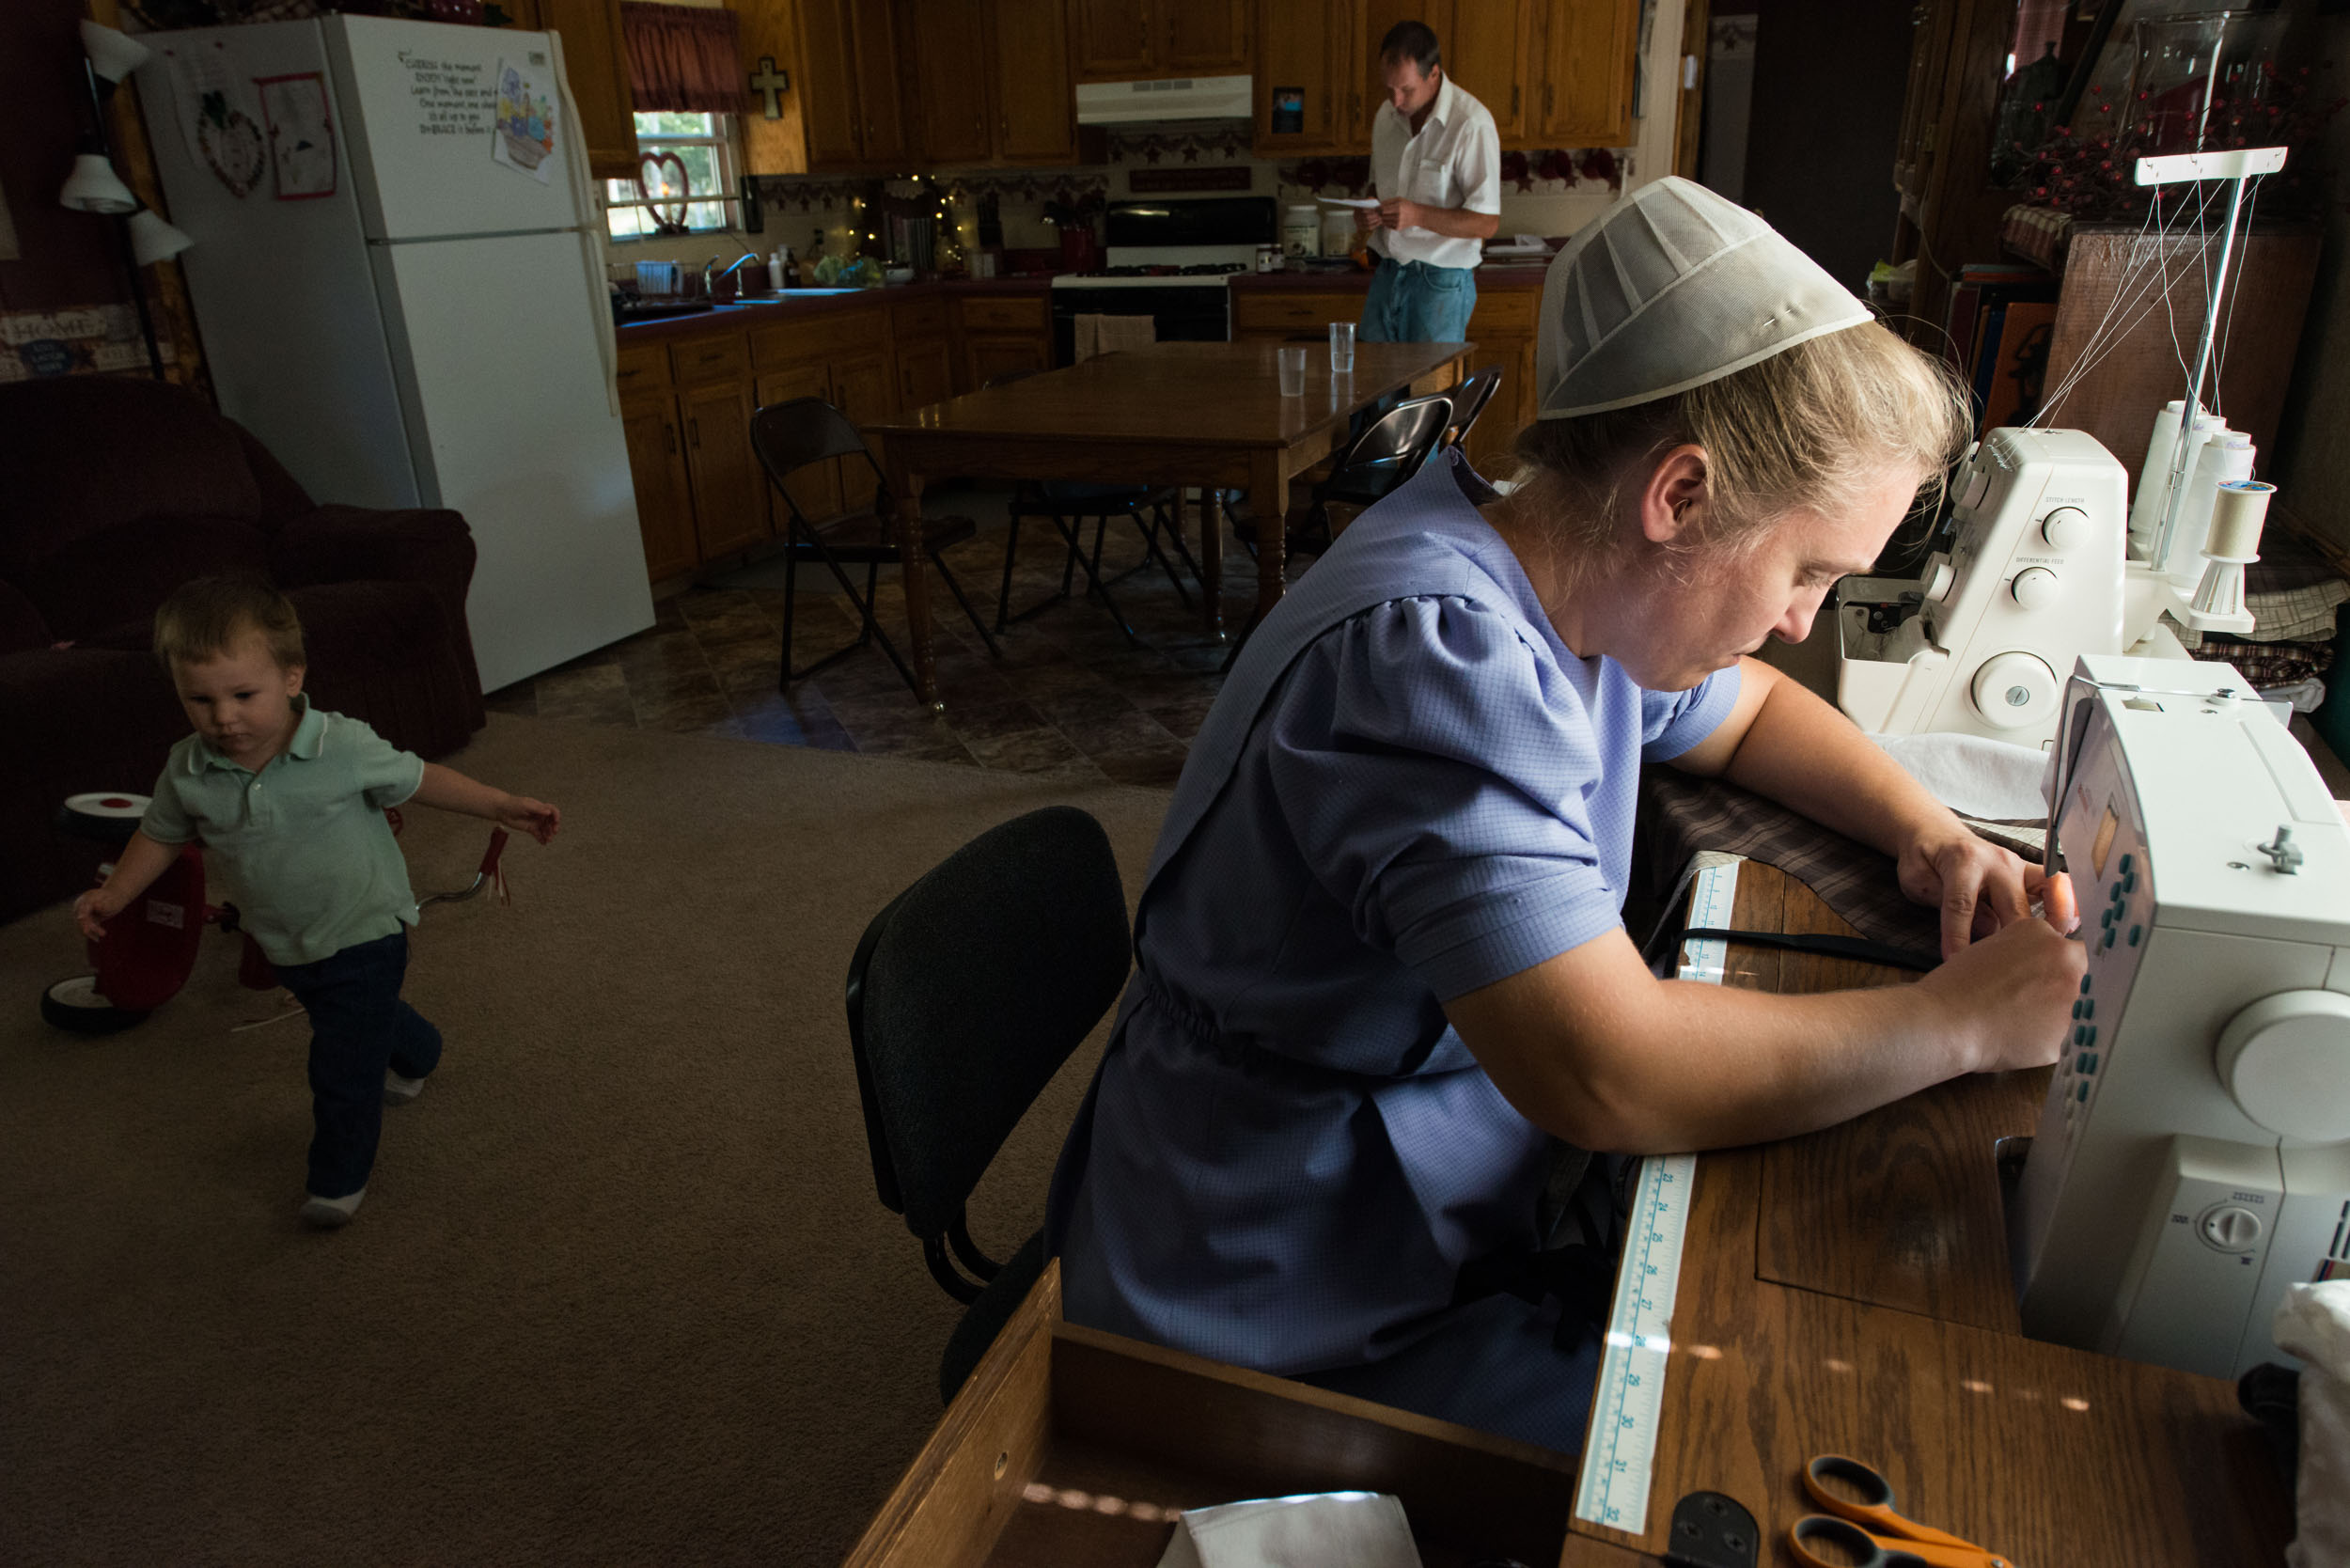 Ruthann sews after lunch while Nathan reviews mail before heading back to his outdoor responsibilities. The Masts had their current pre-fabricated home transported to a new location on the farm in July to make room for the new home construction.